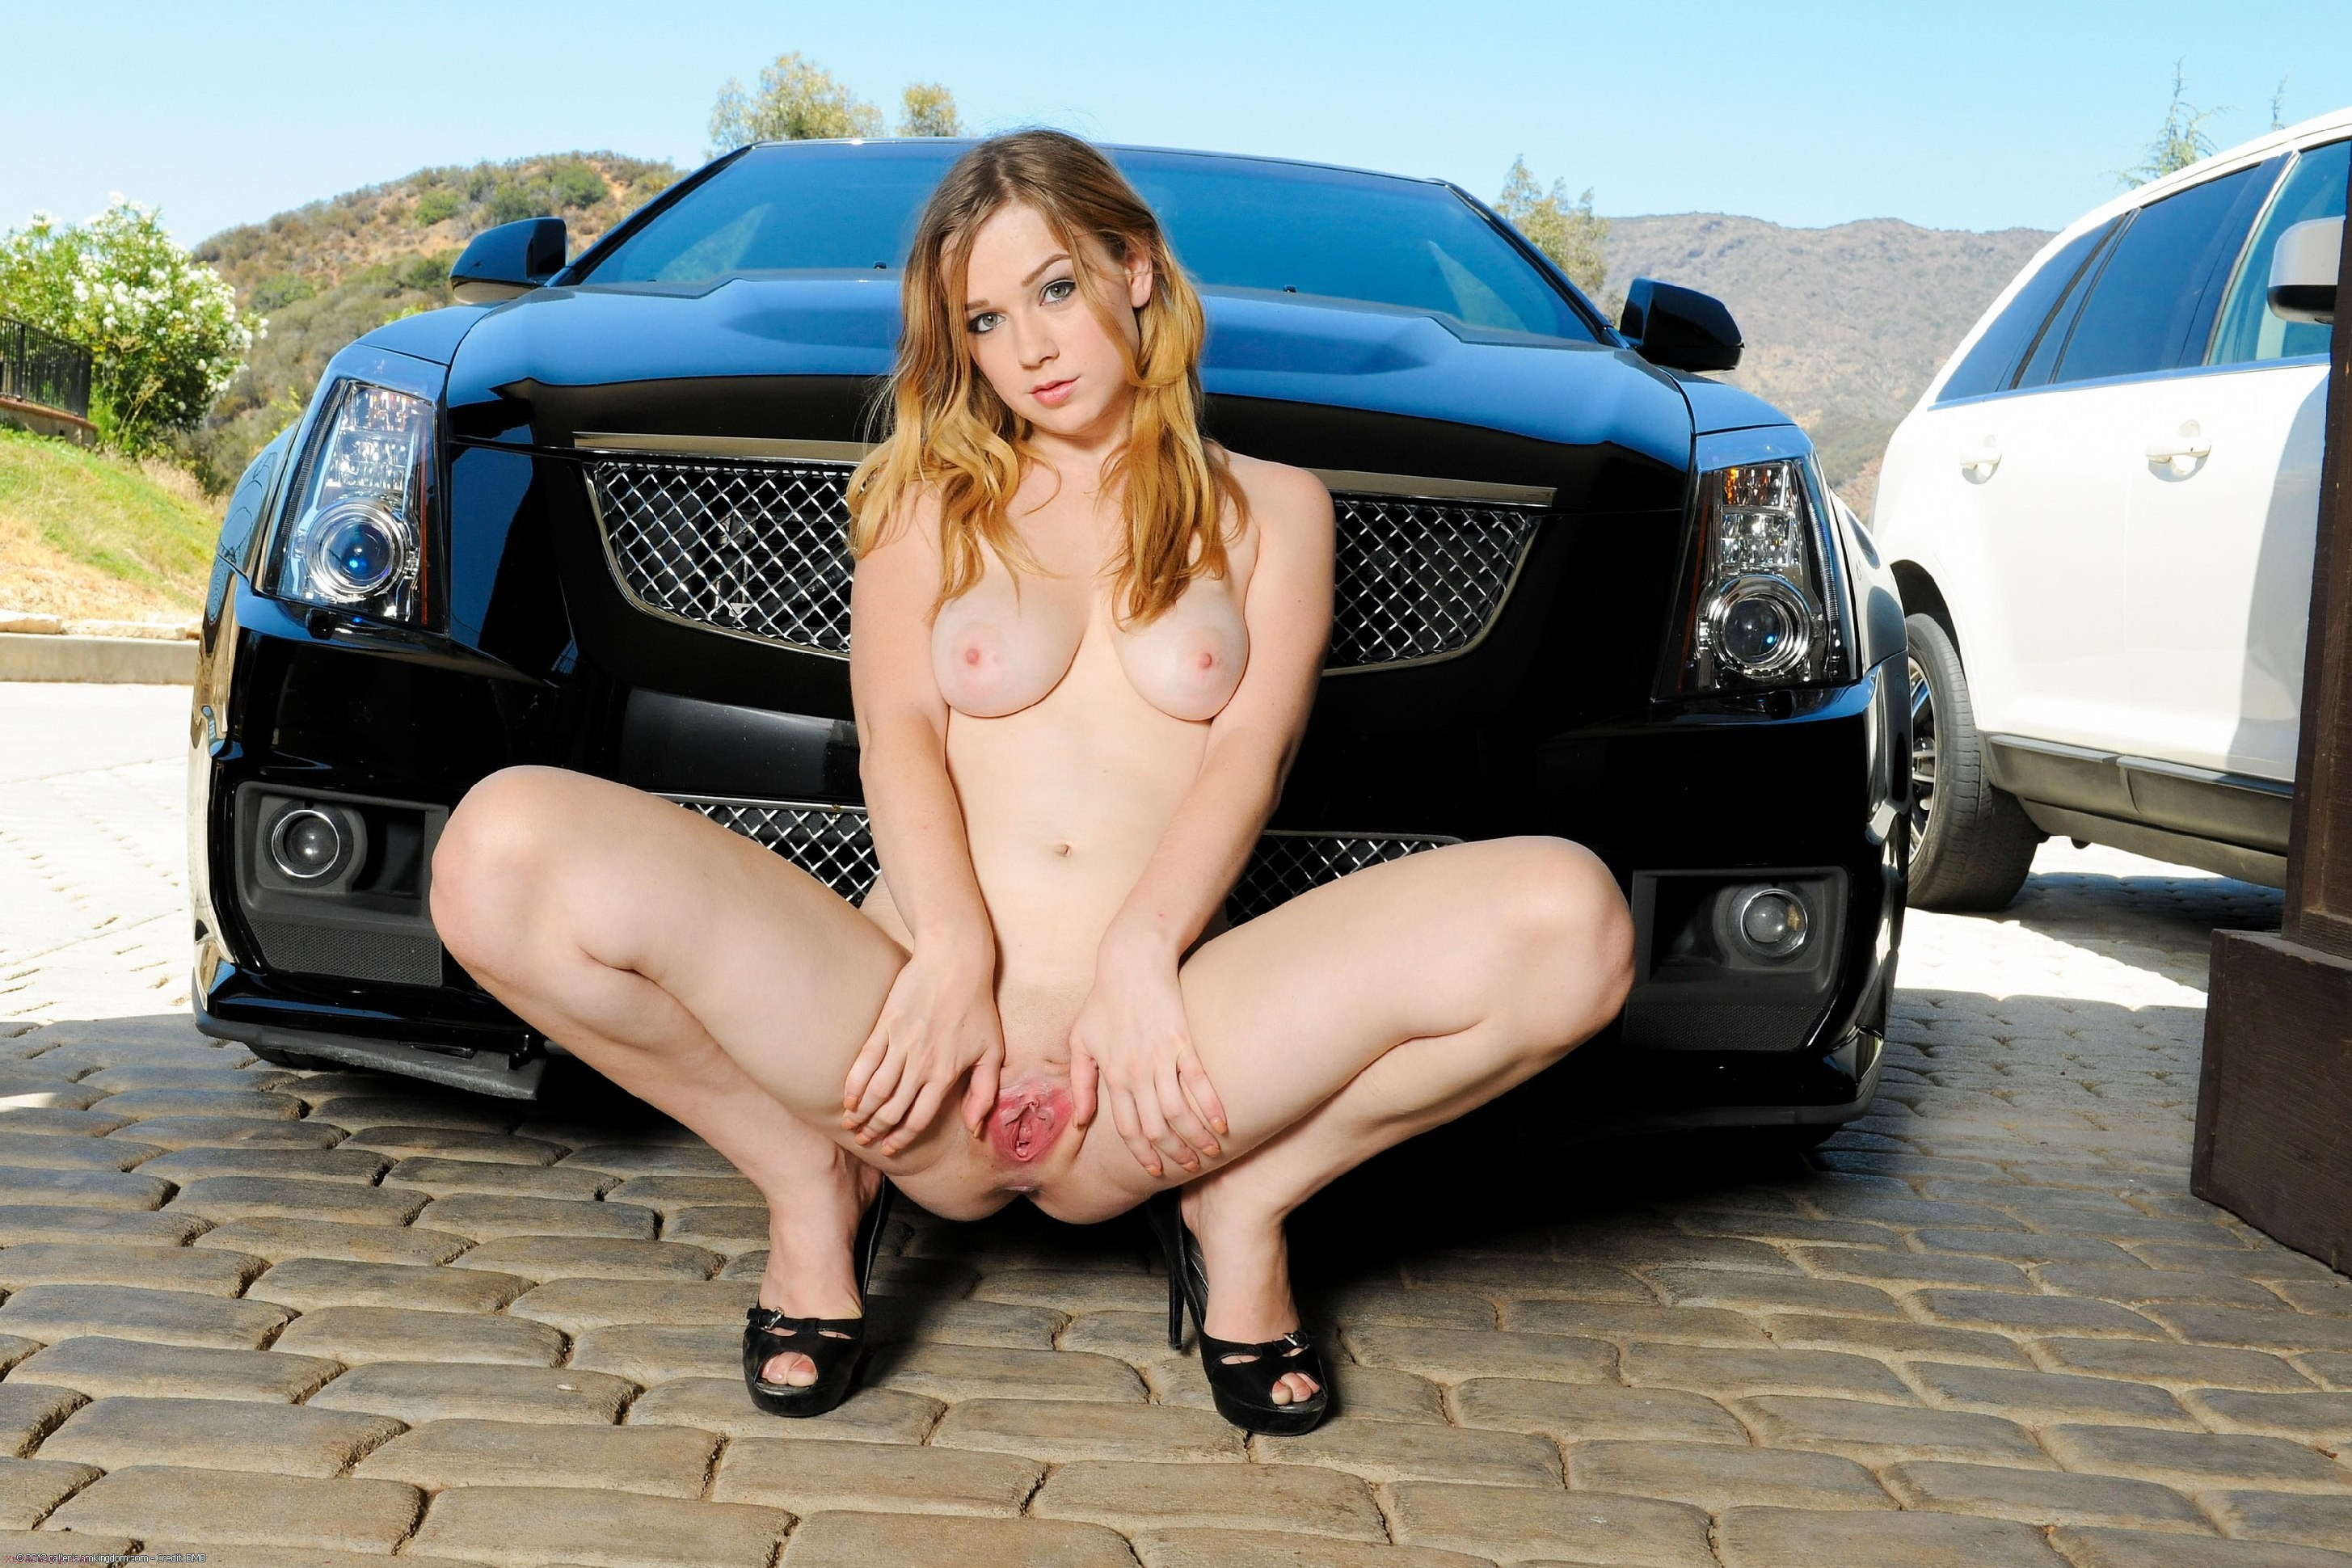 sexy cars and naked women